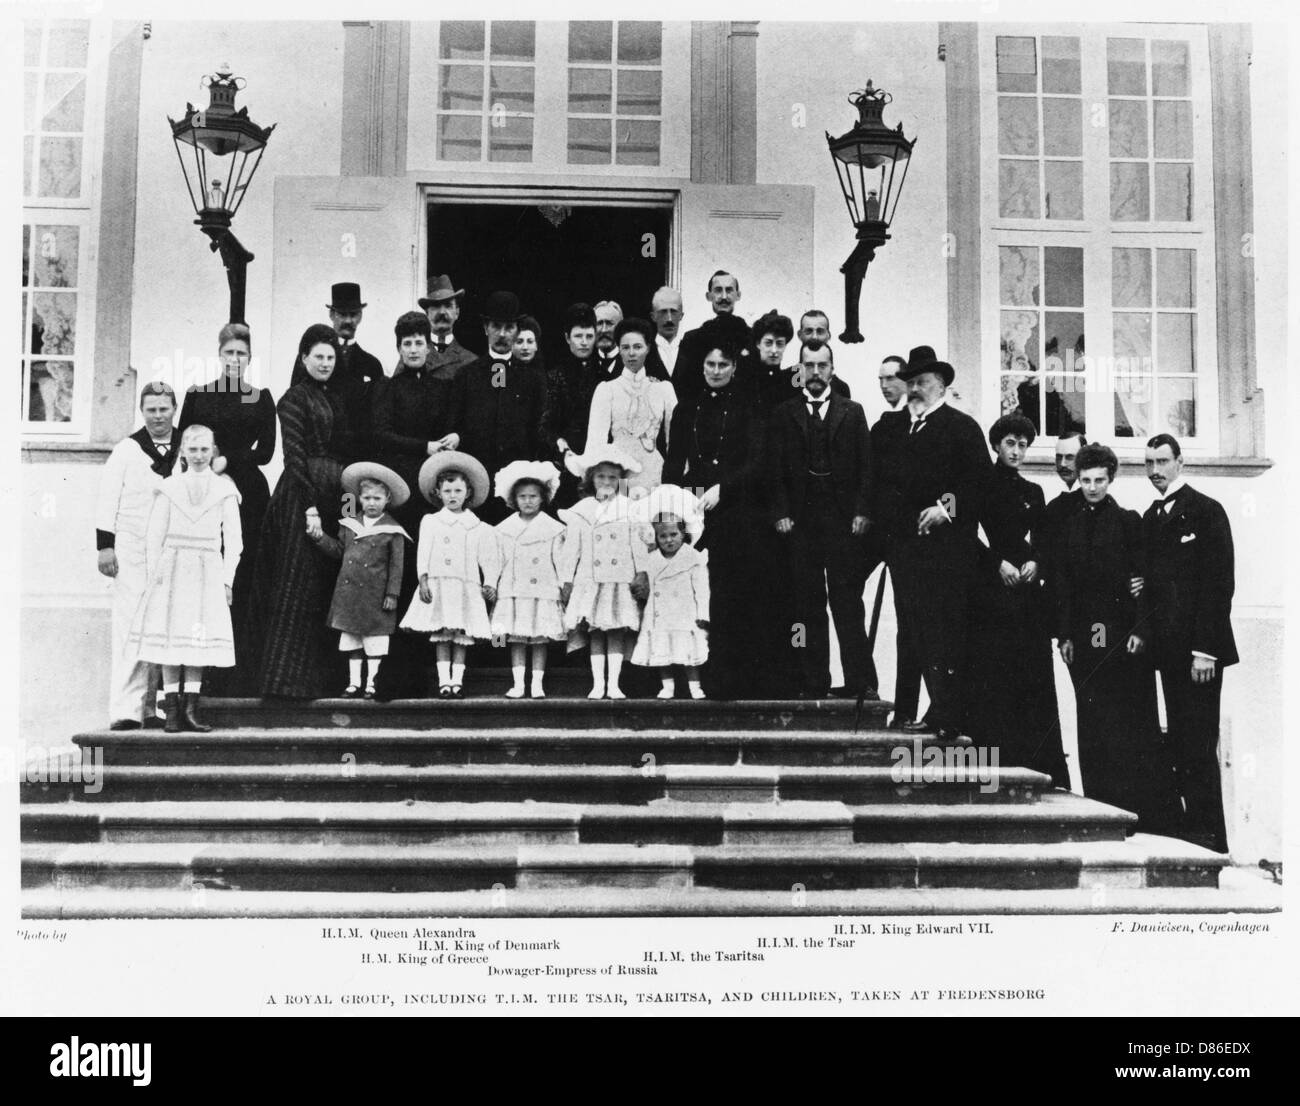 Nicolas Ii Tsar Of Russia With Other European Royalty - Stock Image